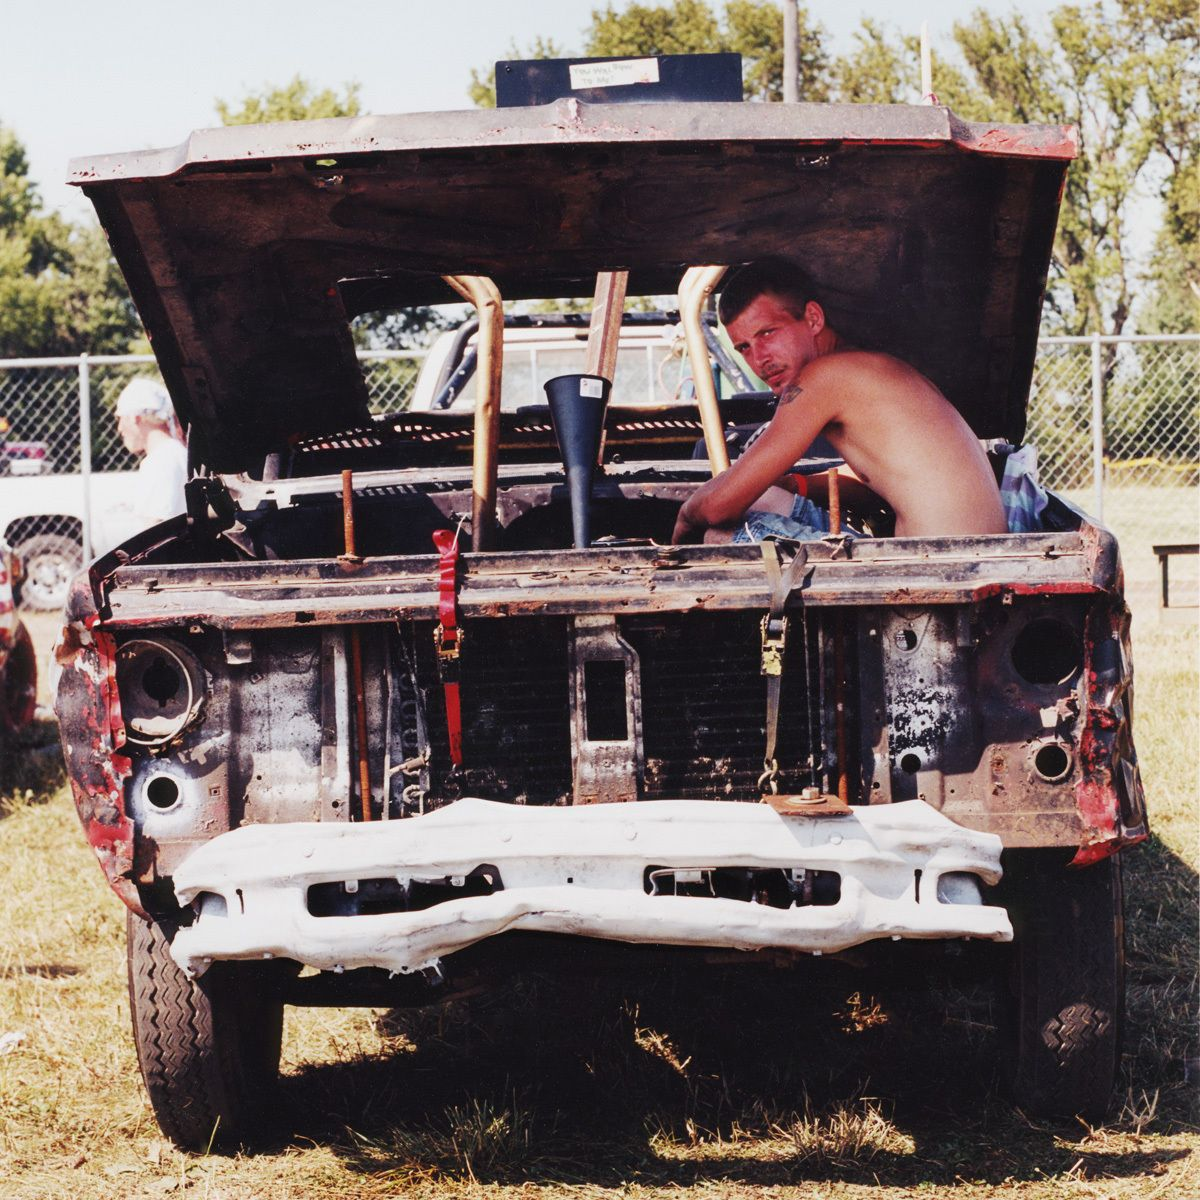 Demo Derby: Fixing